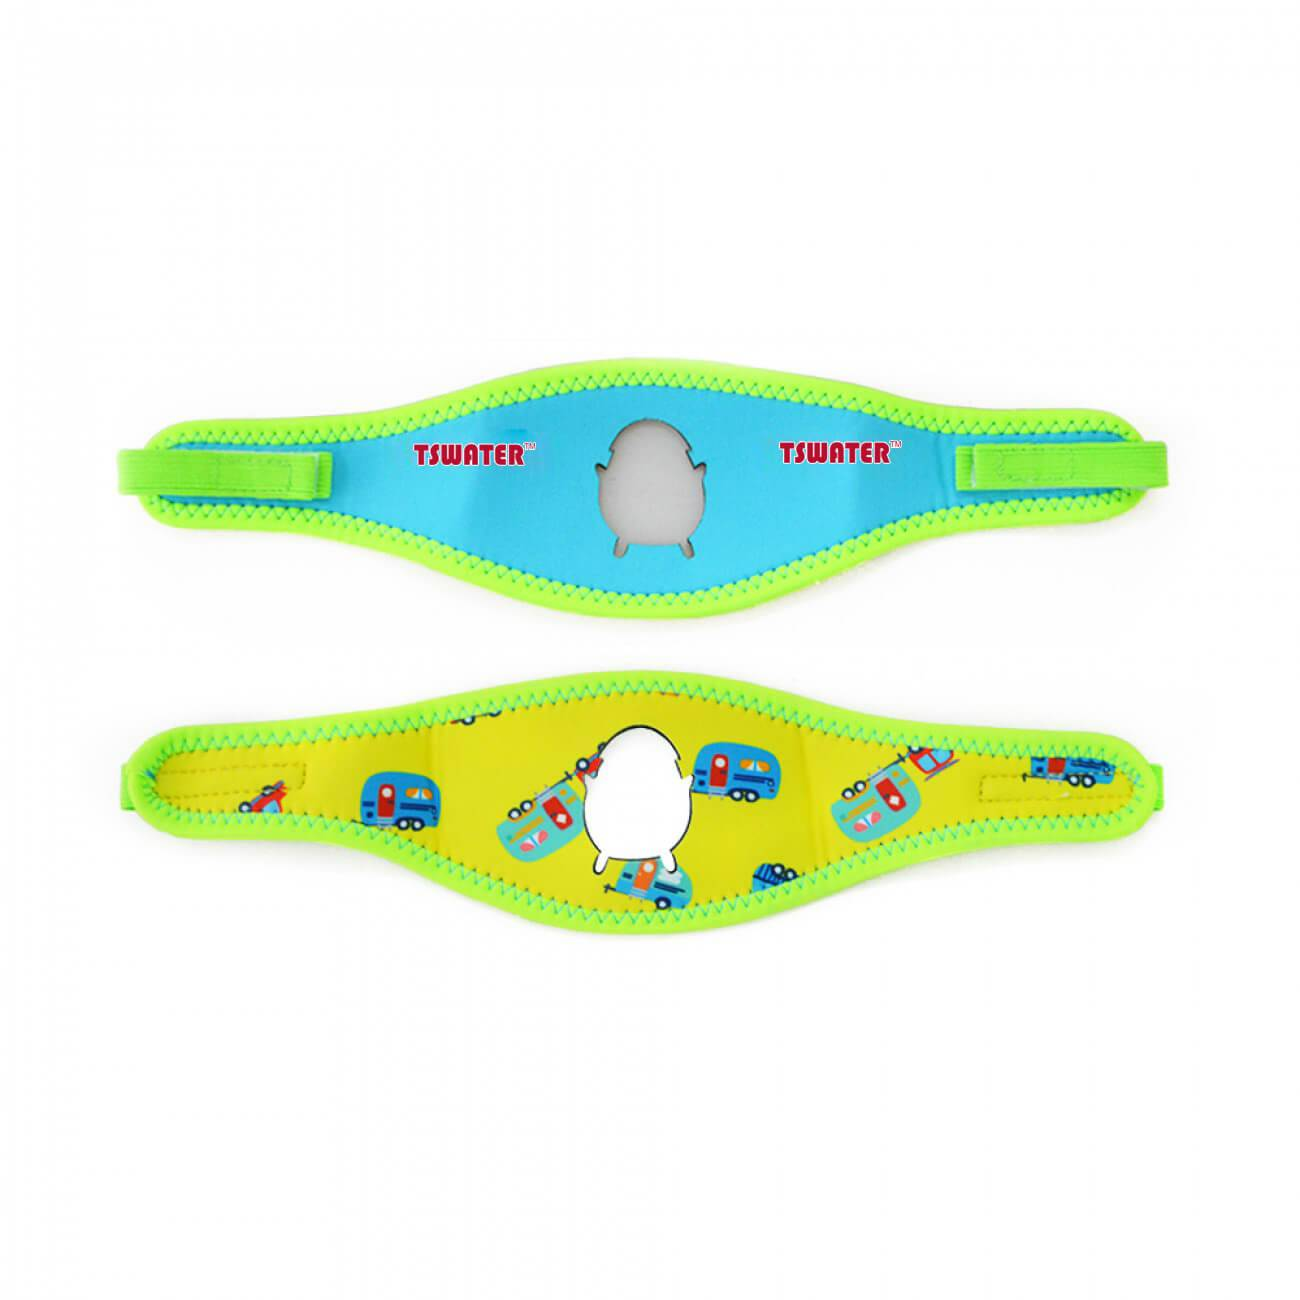 Cartoon pattern children swimming goggles adustable strap  neoprene material Featured Image